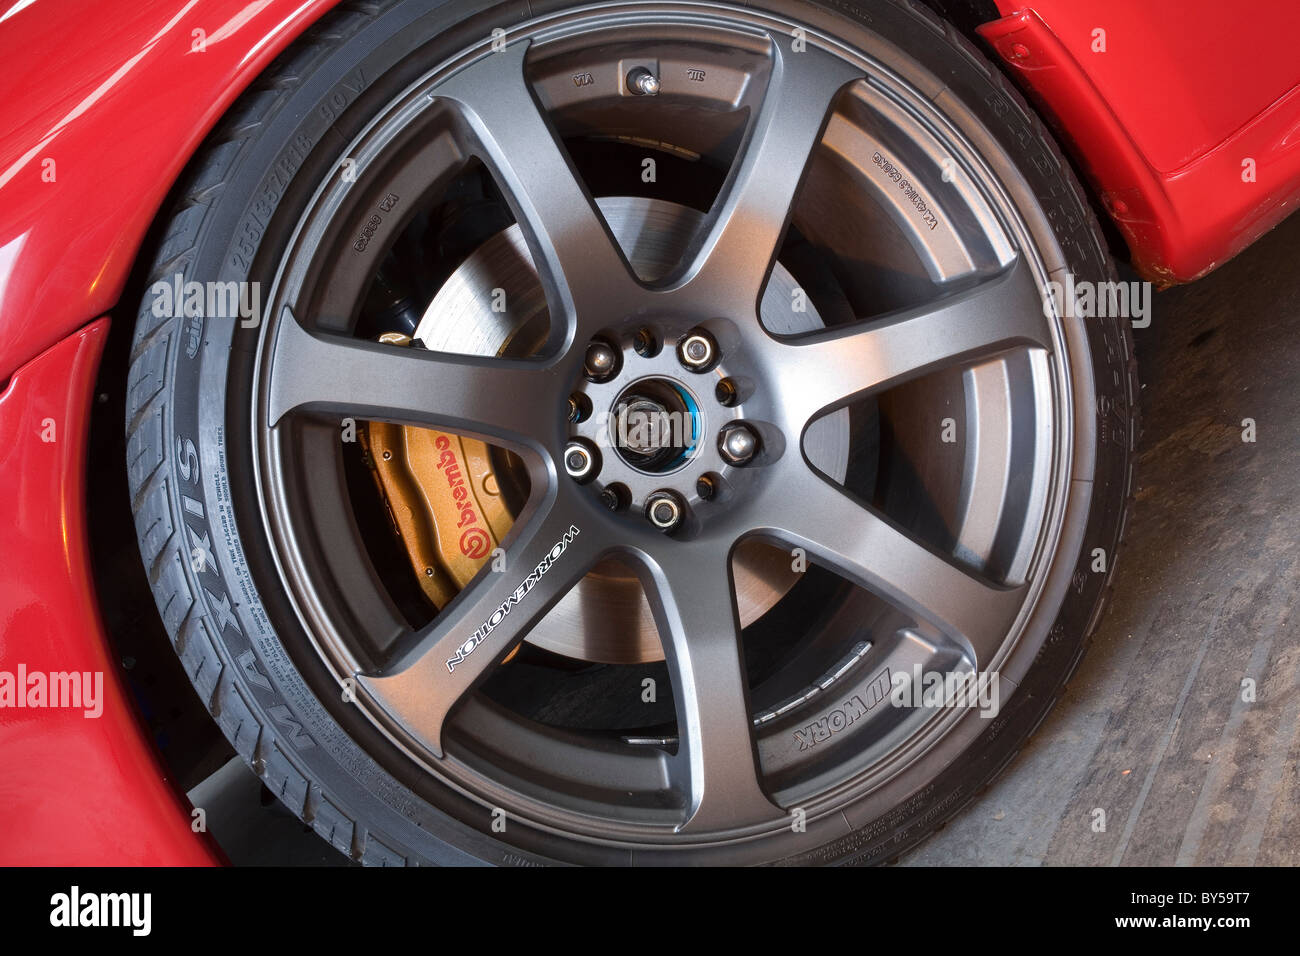 Alloy Metal Wheel Tyre Brembo Brake Caliper Disc On A Japanese